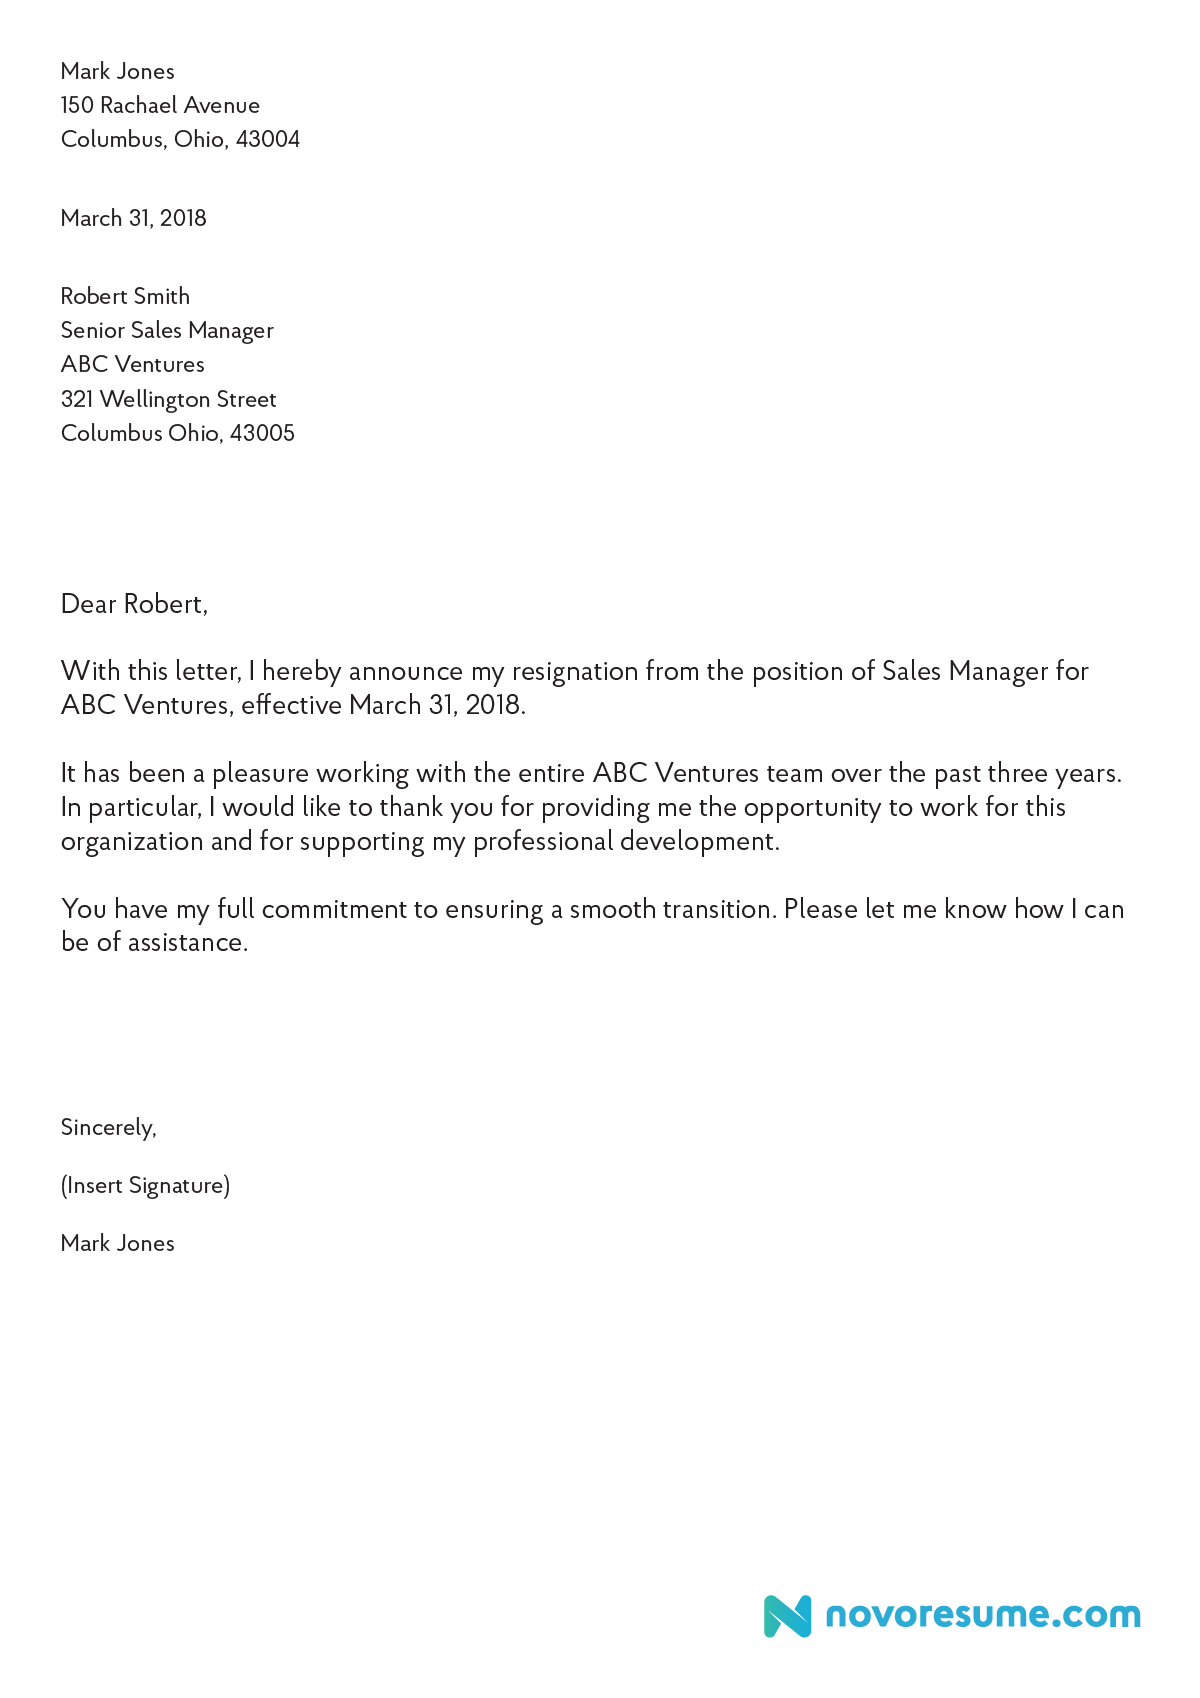 How to write a letter of resignation 2018 extensive guide resignation letter sample 2018 spiritdancerdesigns